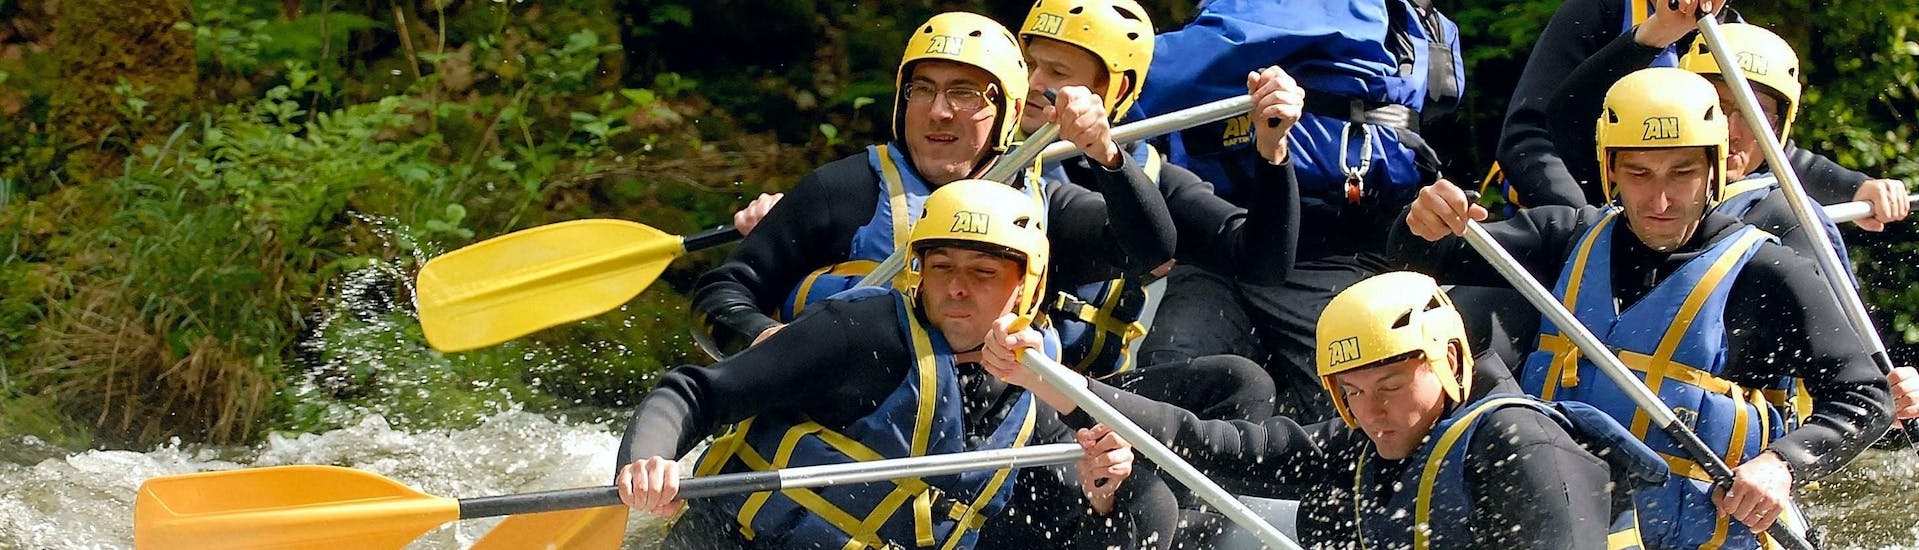 private-rafting-le-chalaux-an-morvan-hero